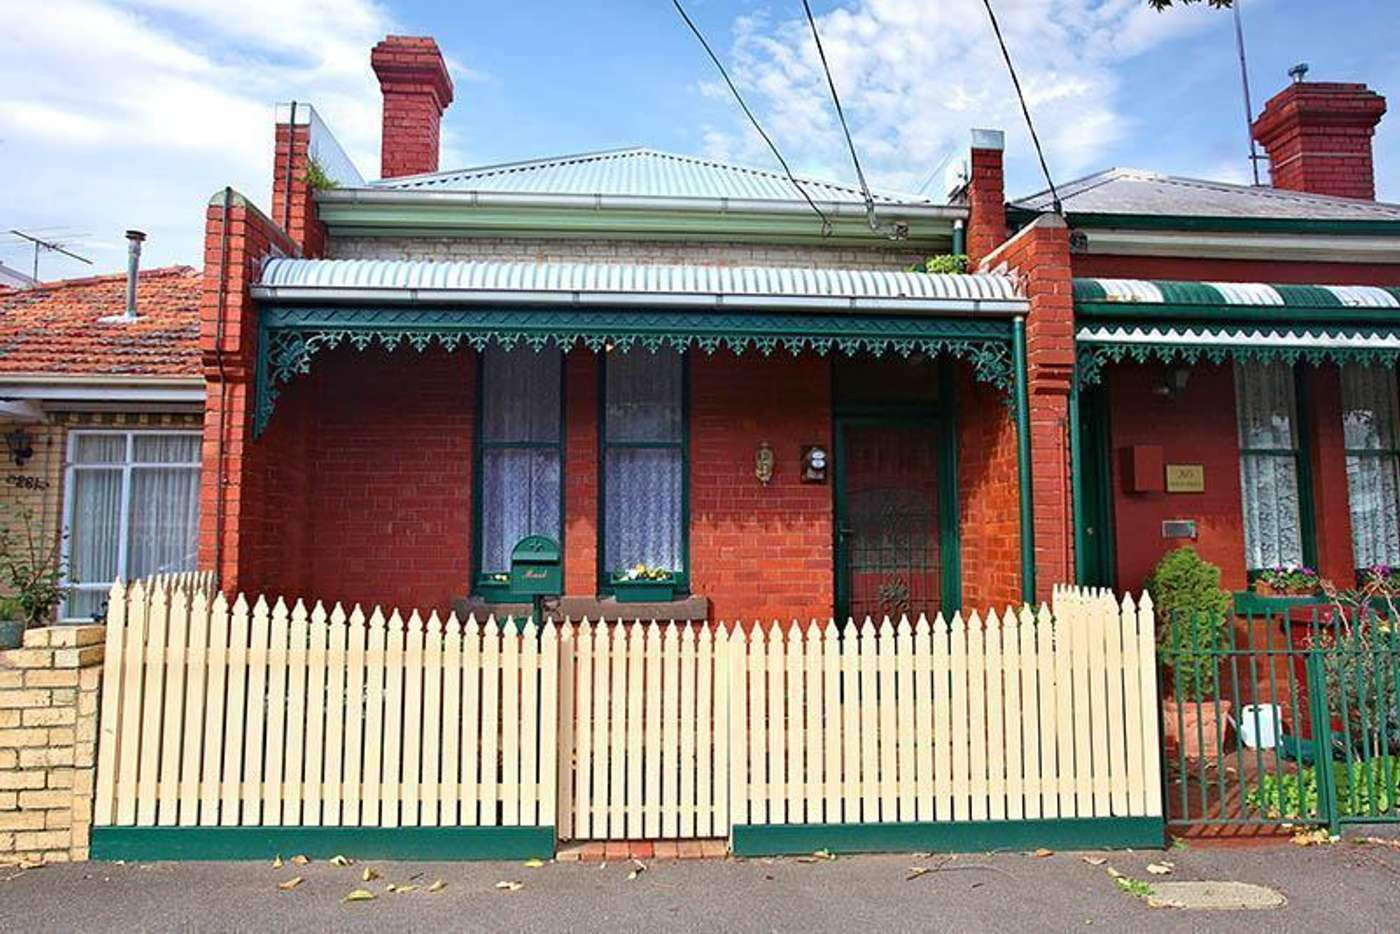 Main view of Homely house listing, 263 Moray Street, South Melbourne VIC 3205